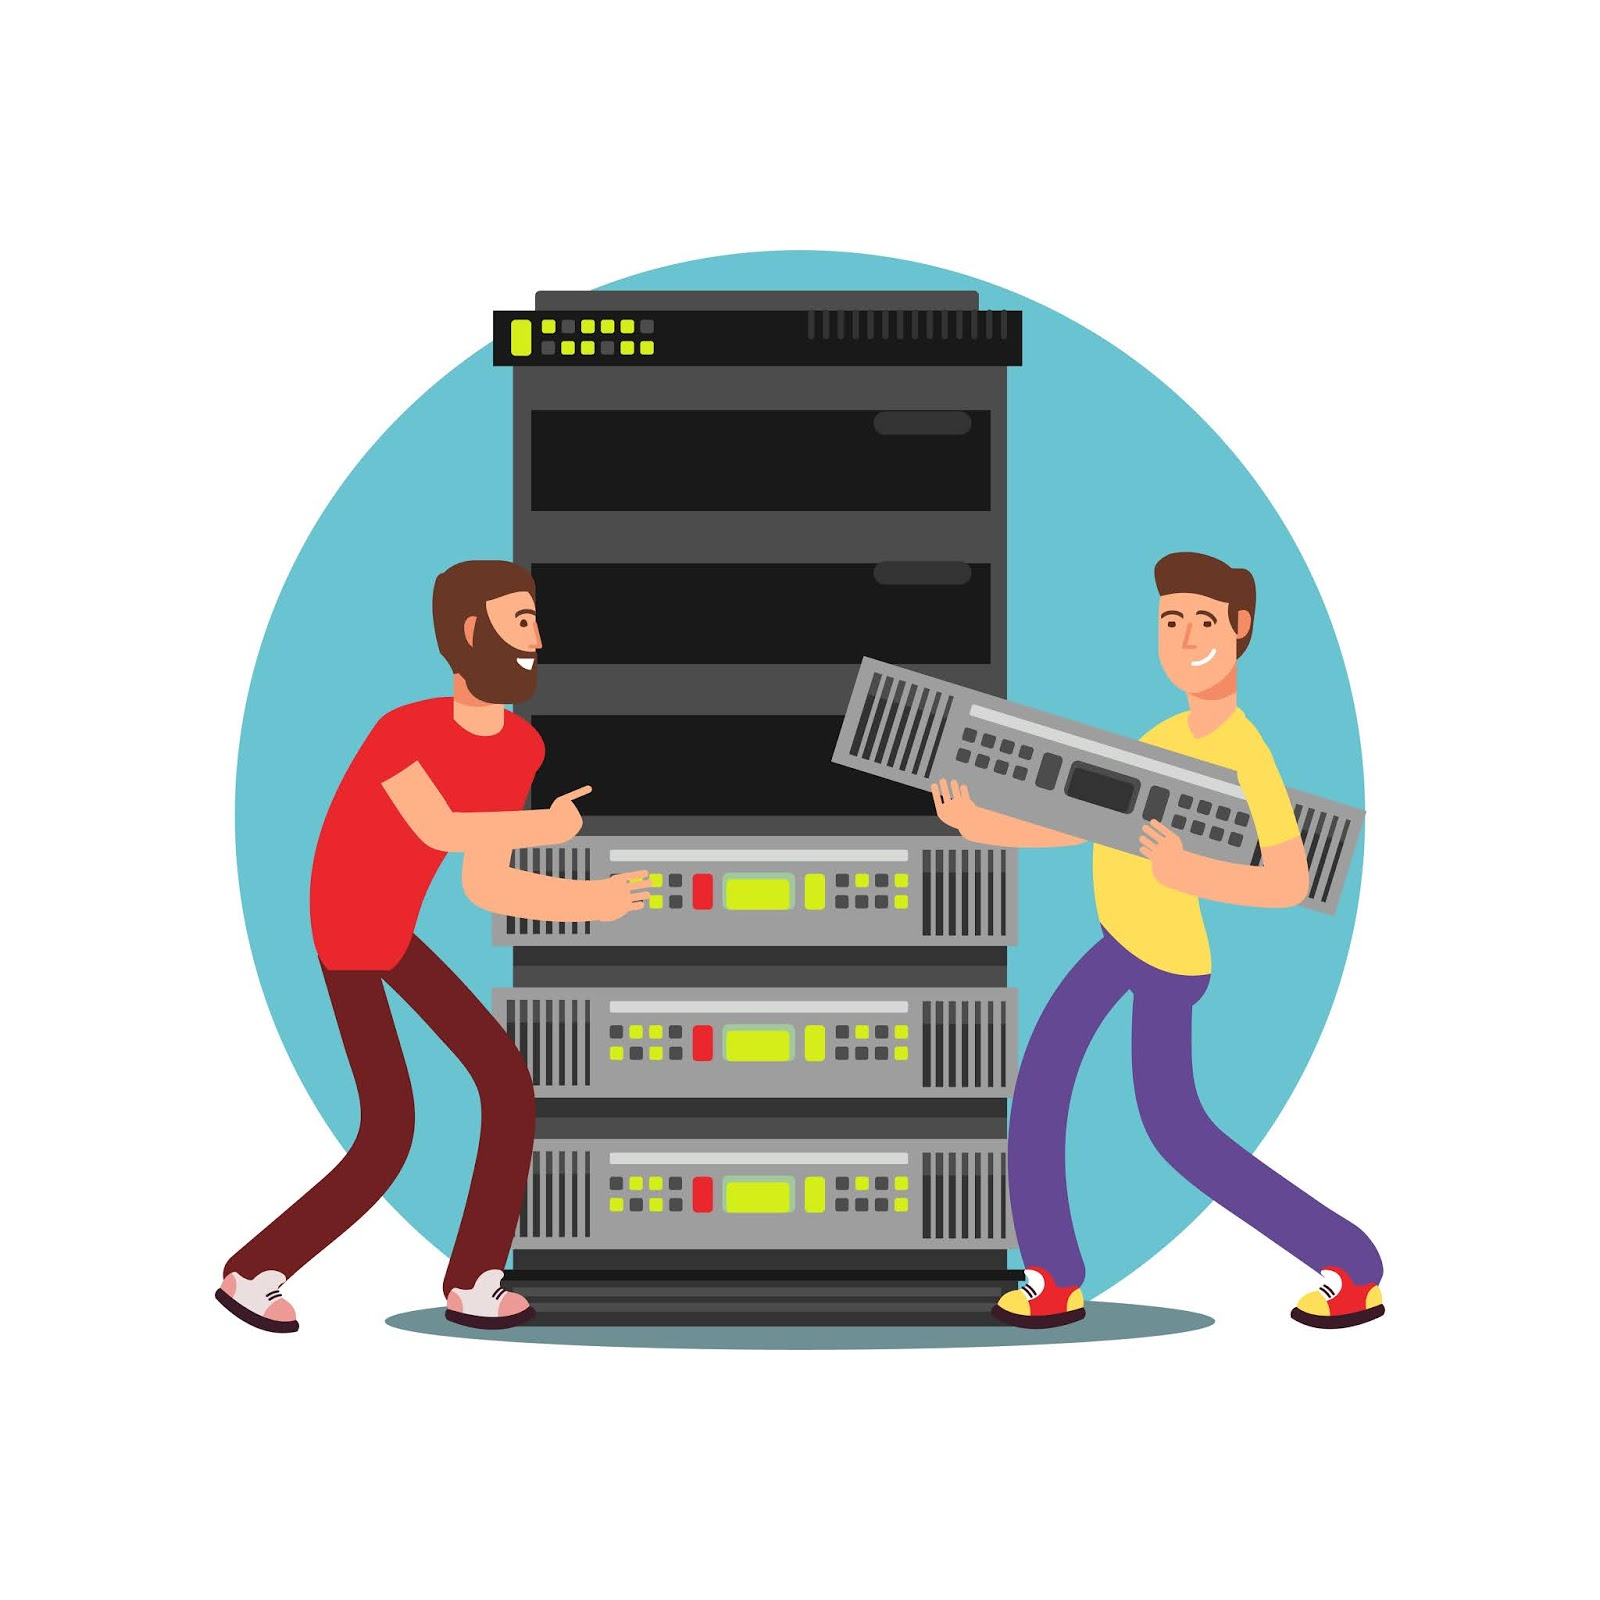 Two Male Server Administrators Working With Data Base It Flat Vector Illustration Free Download Vector CDR, AI, EPS and PNG Formats